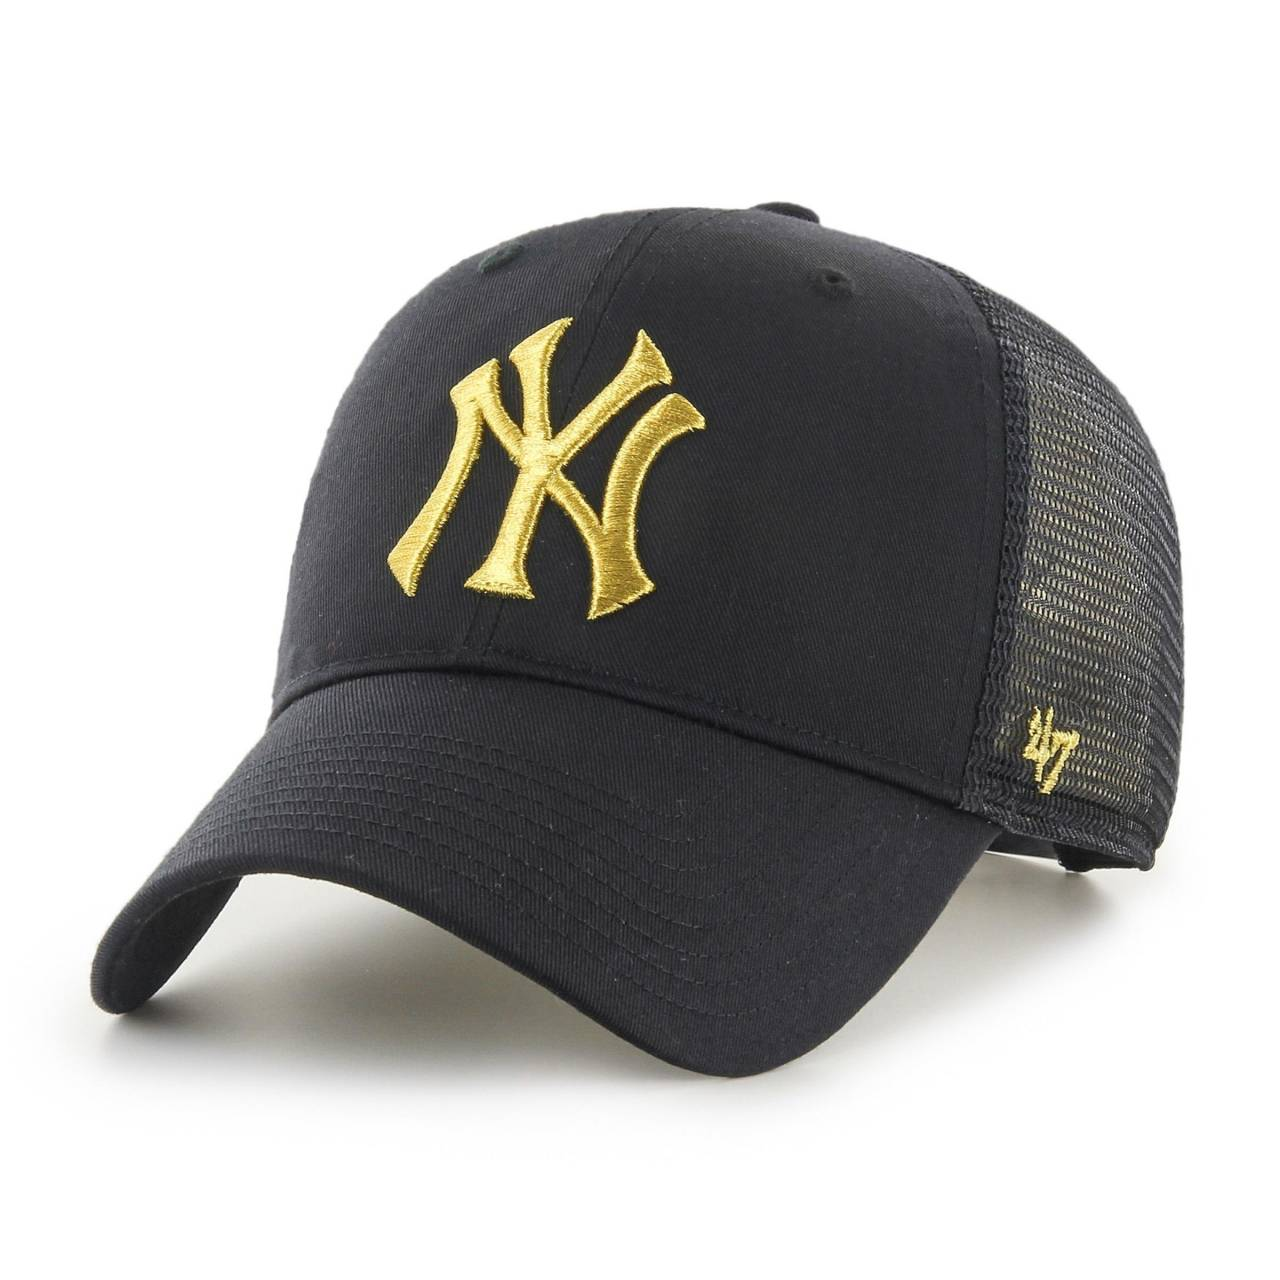 MLB NEW YORK YANKEES BRANSON METALLIC '47 MVP BLACK